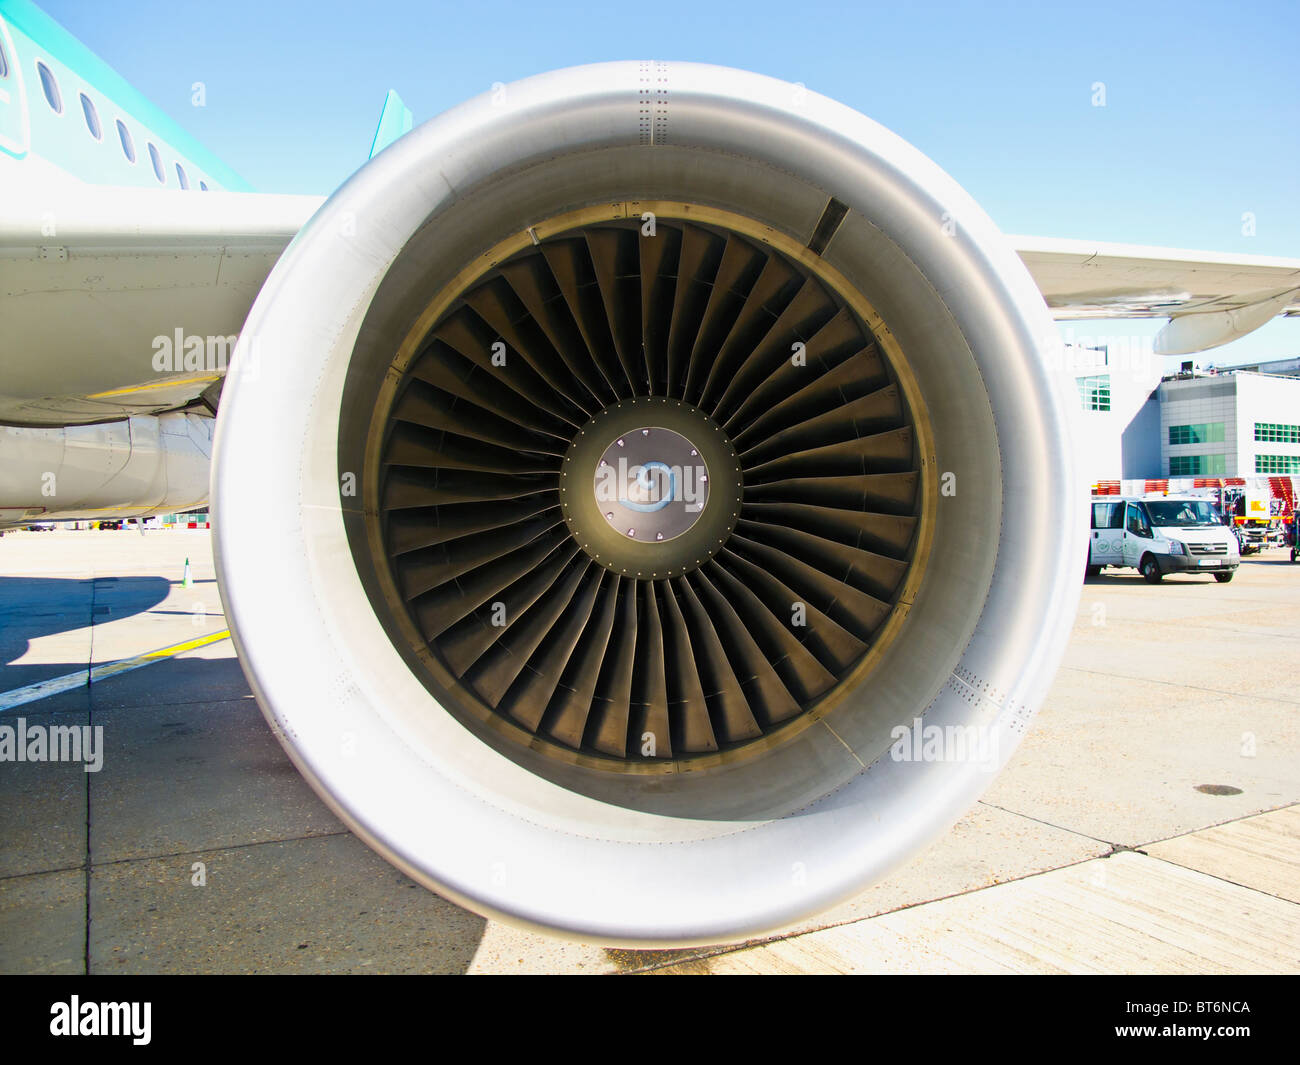 Airbus A320 engine - Stock Image